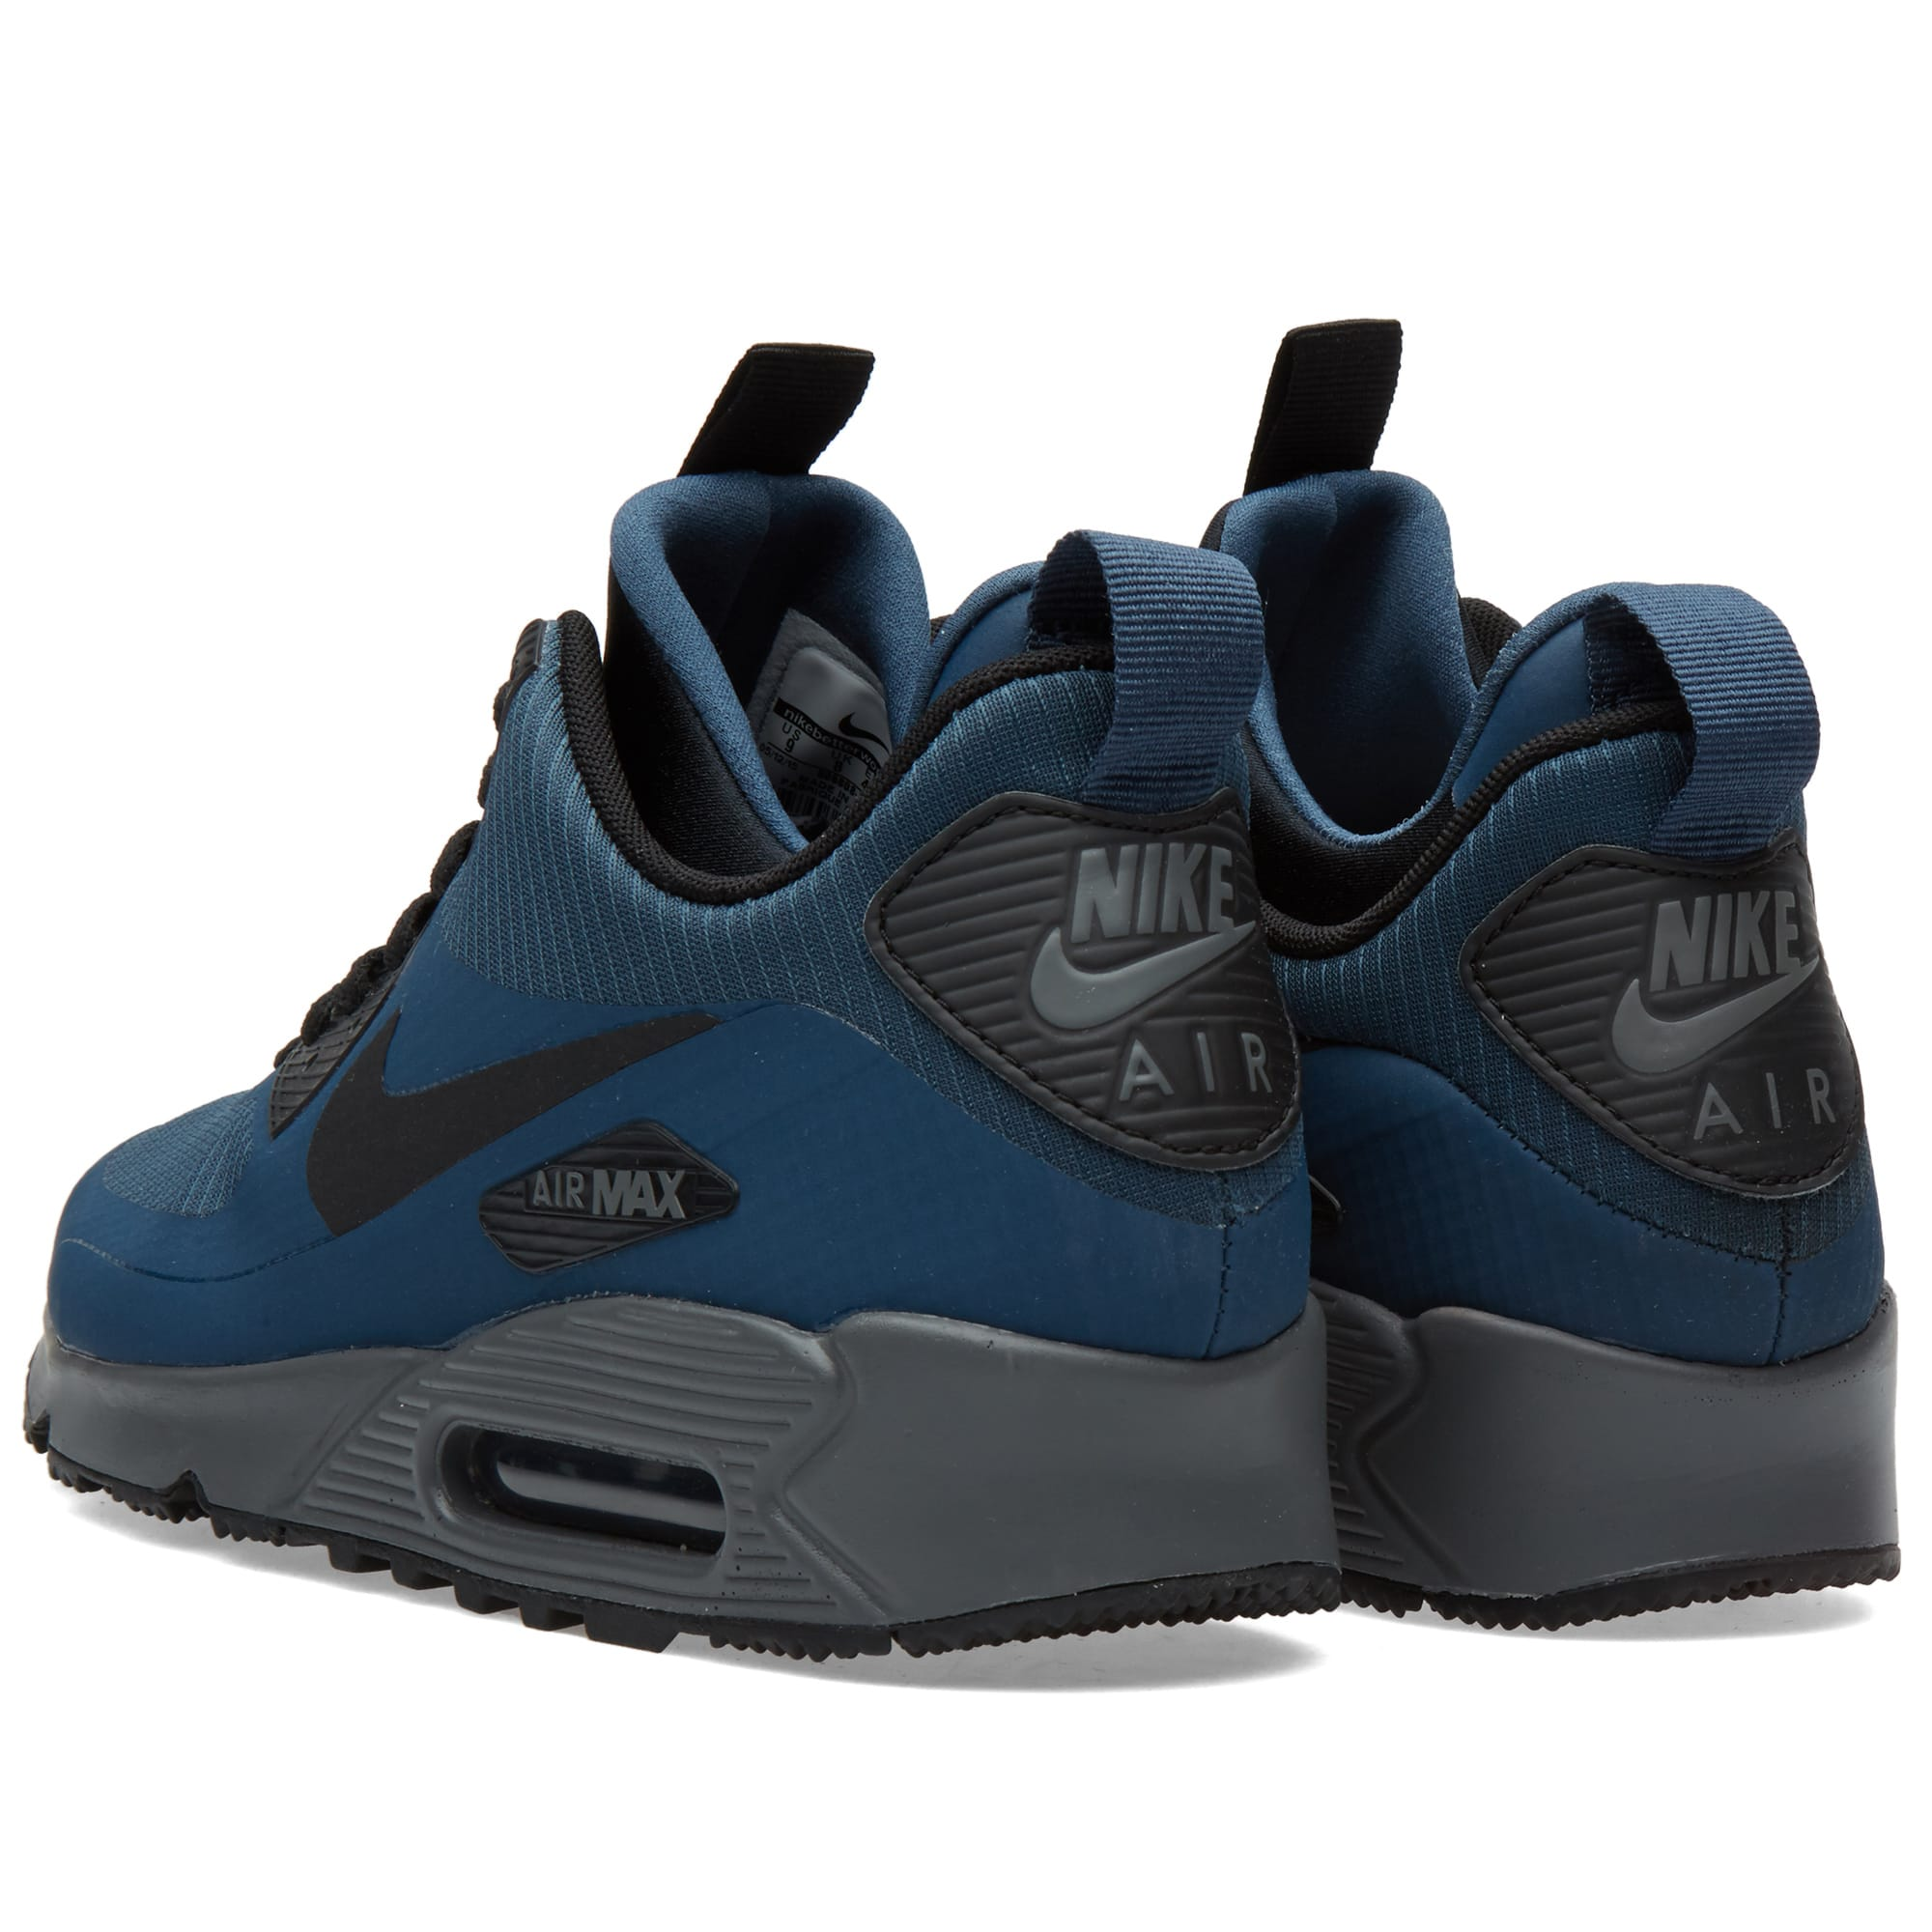 nike air max 90 mid winter squadron blue black. Black Bedroom Furniture Sets. Home Design Ideas